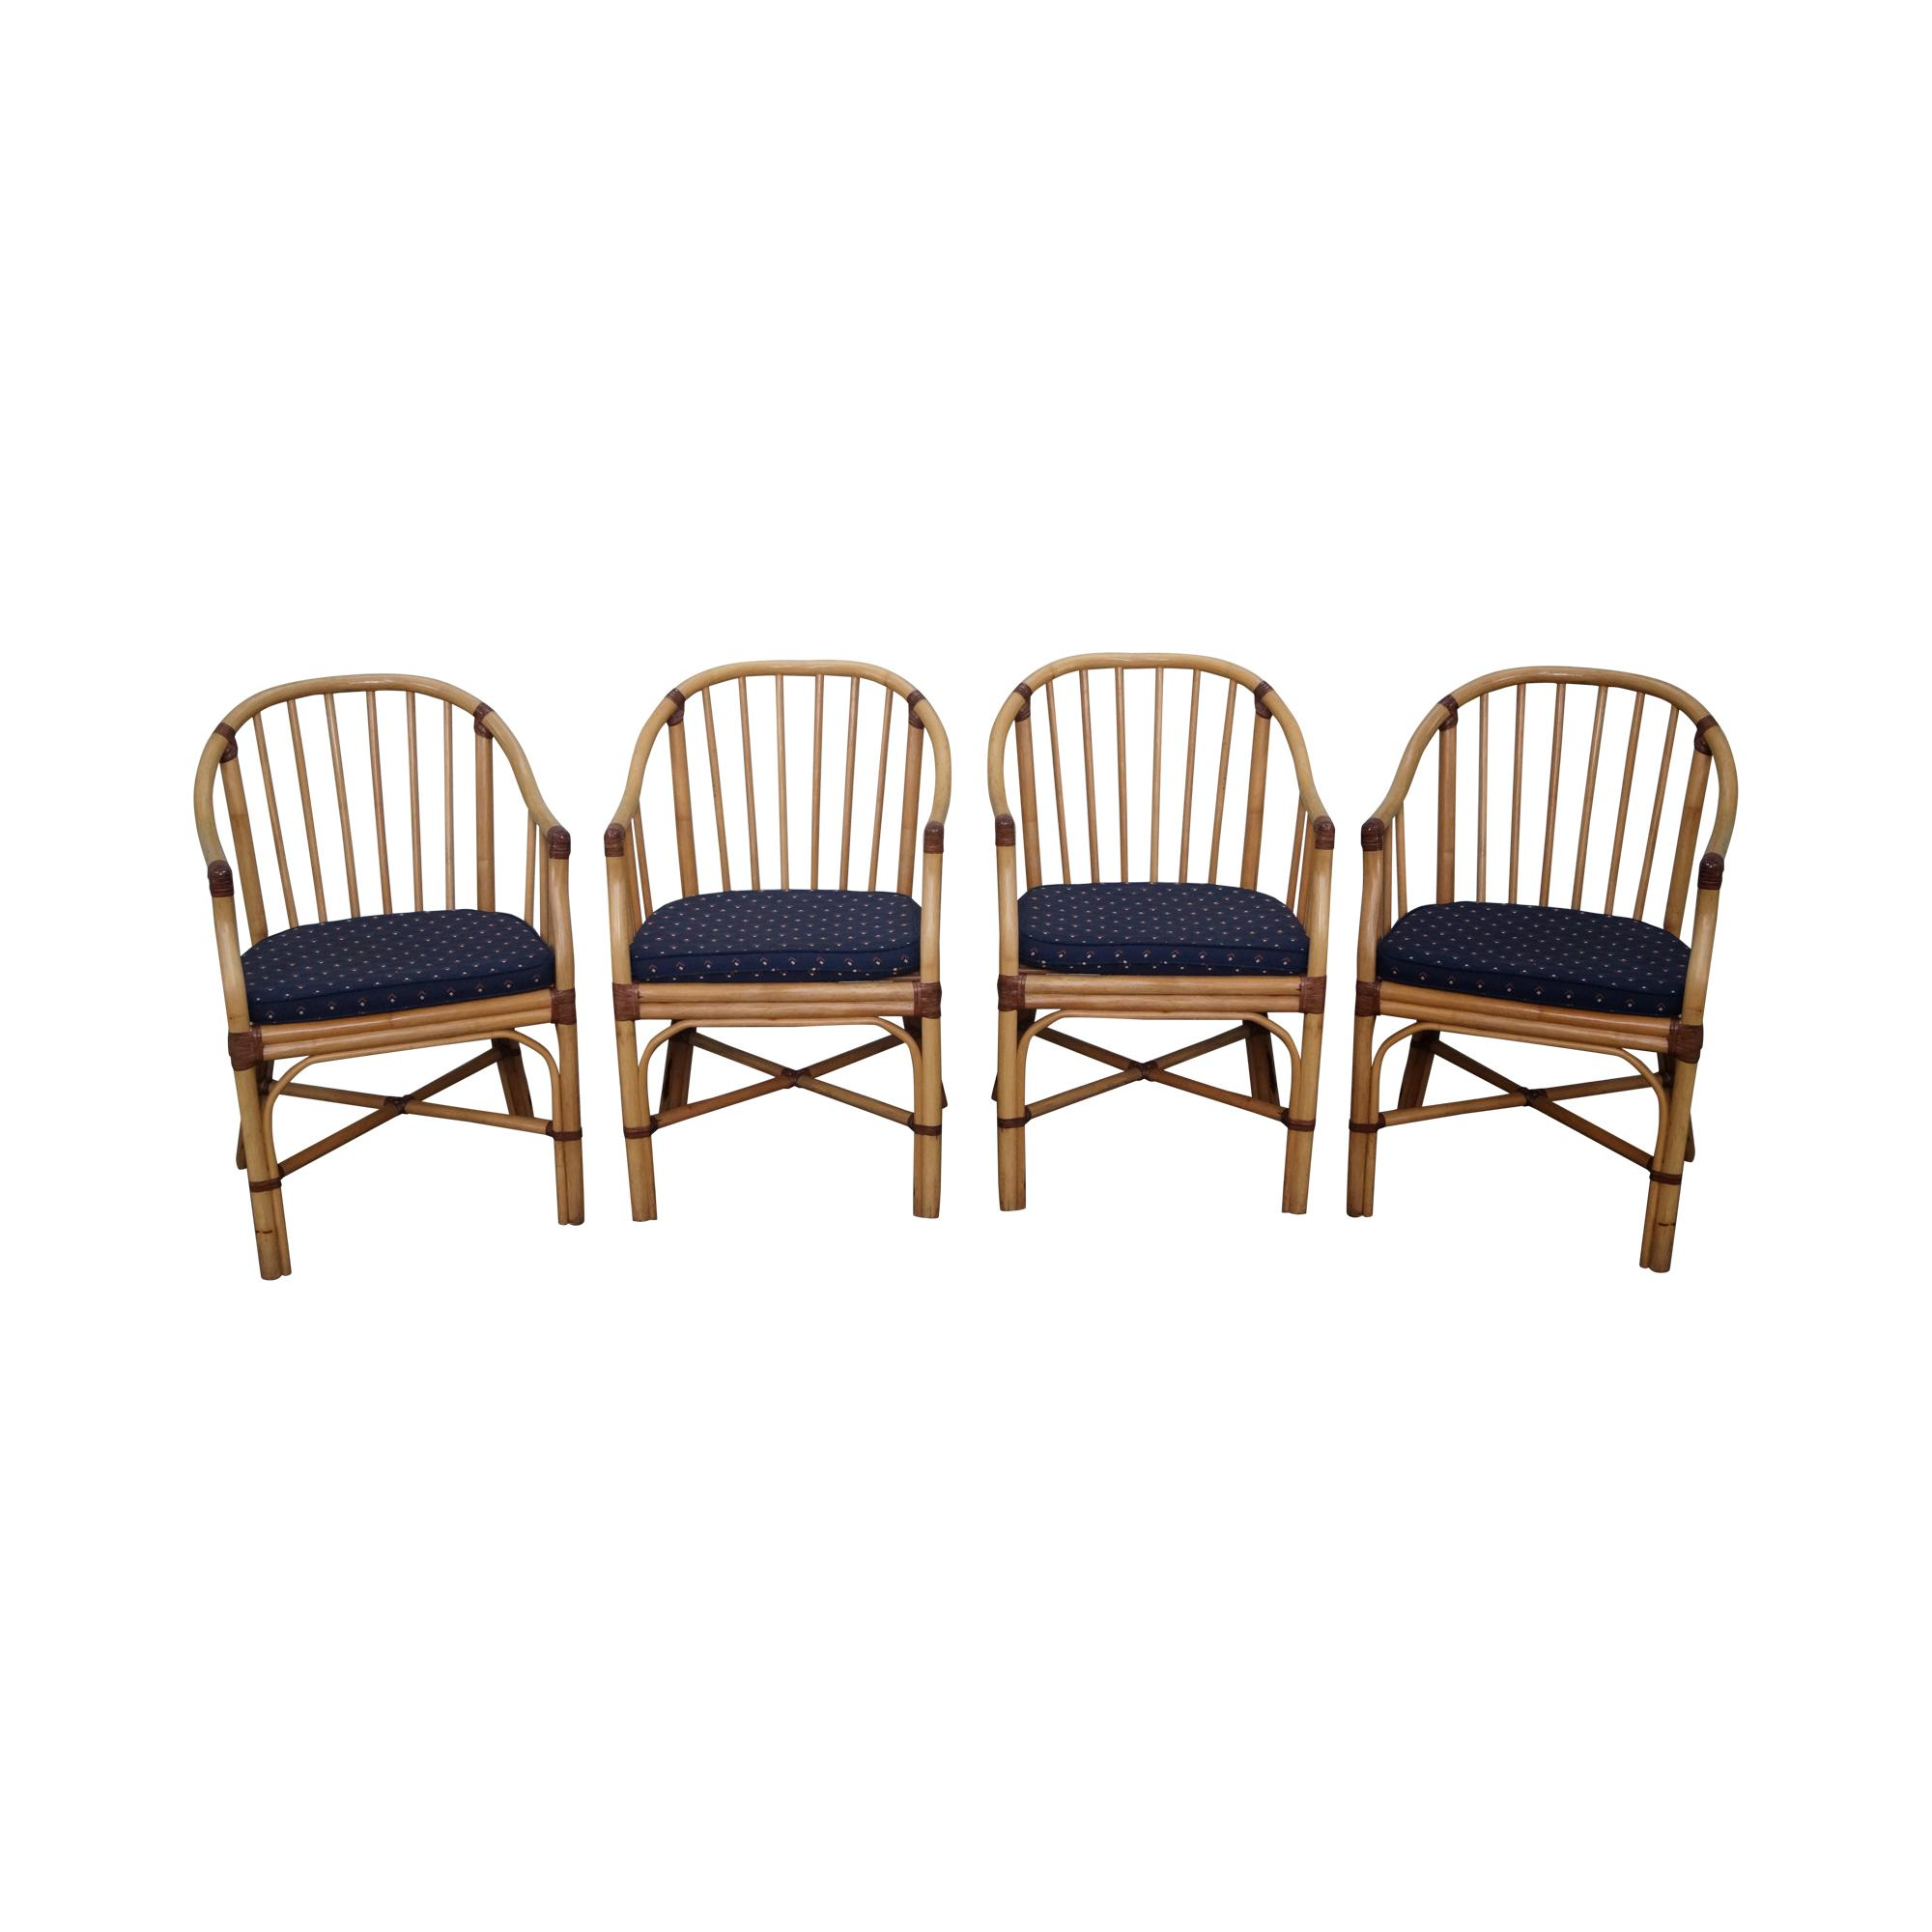 McGuire Style Rattan Barrel Back Dining Chairs Set of 4